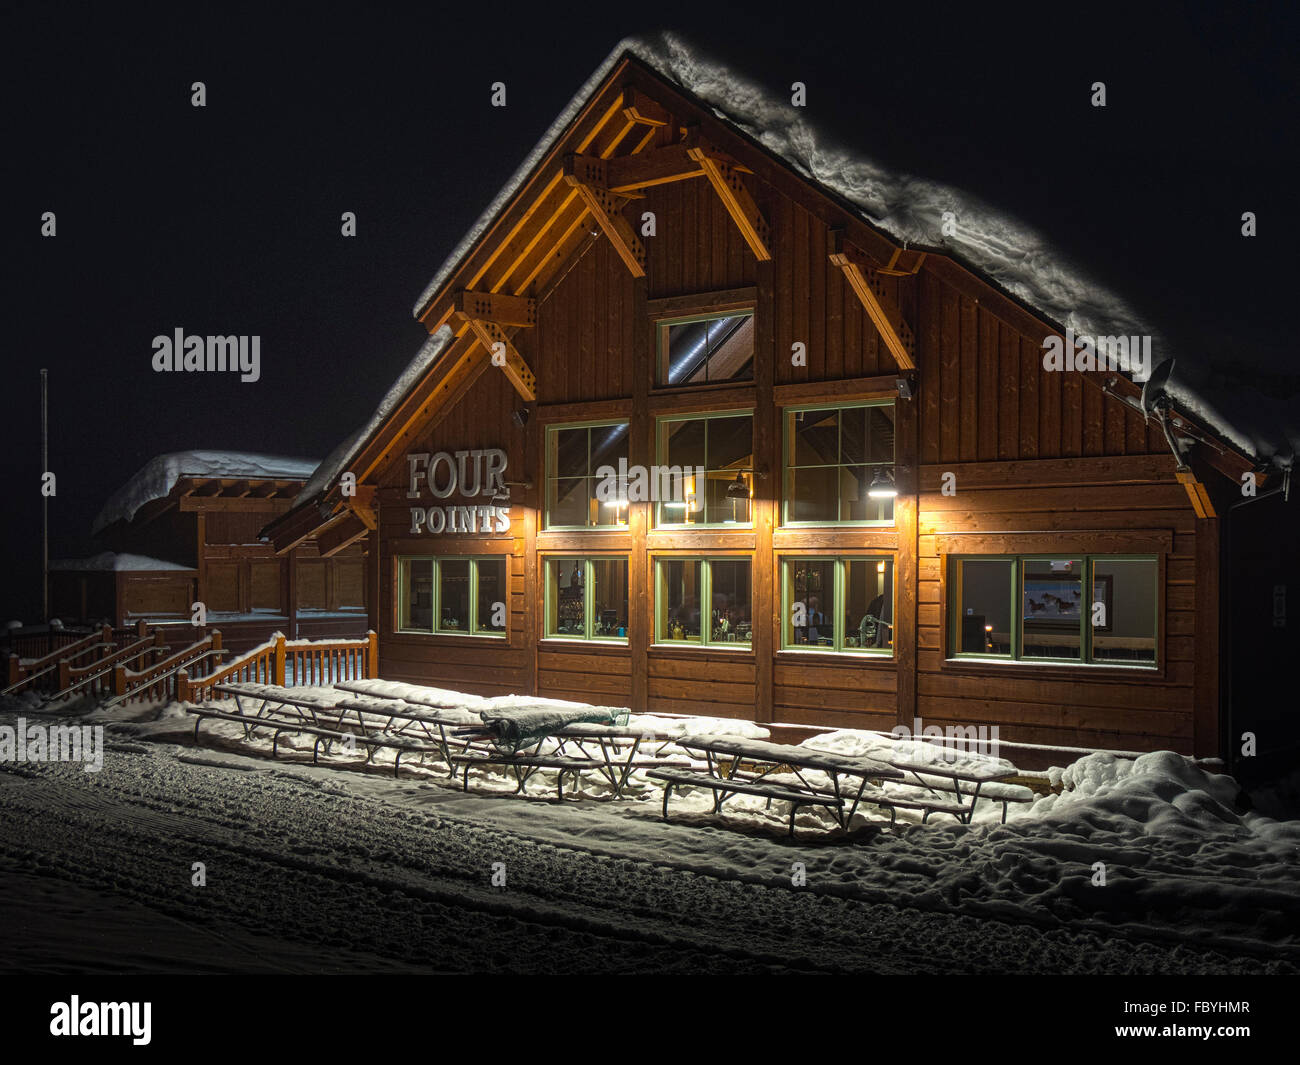 Outside Four Points Lodge for evening dinners, Steamboat Ski Resort Steamboat Springs, Colorado. - Stock Image